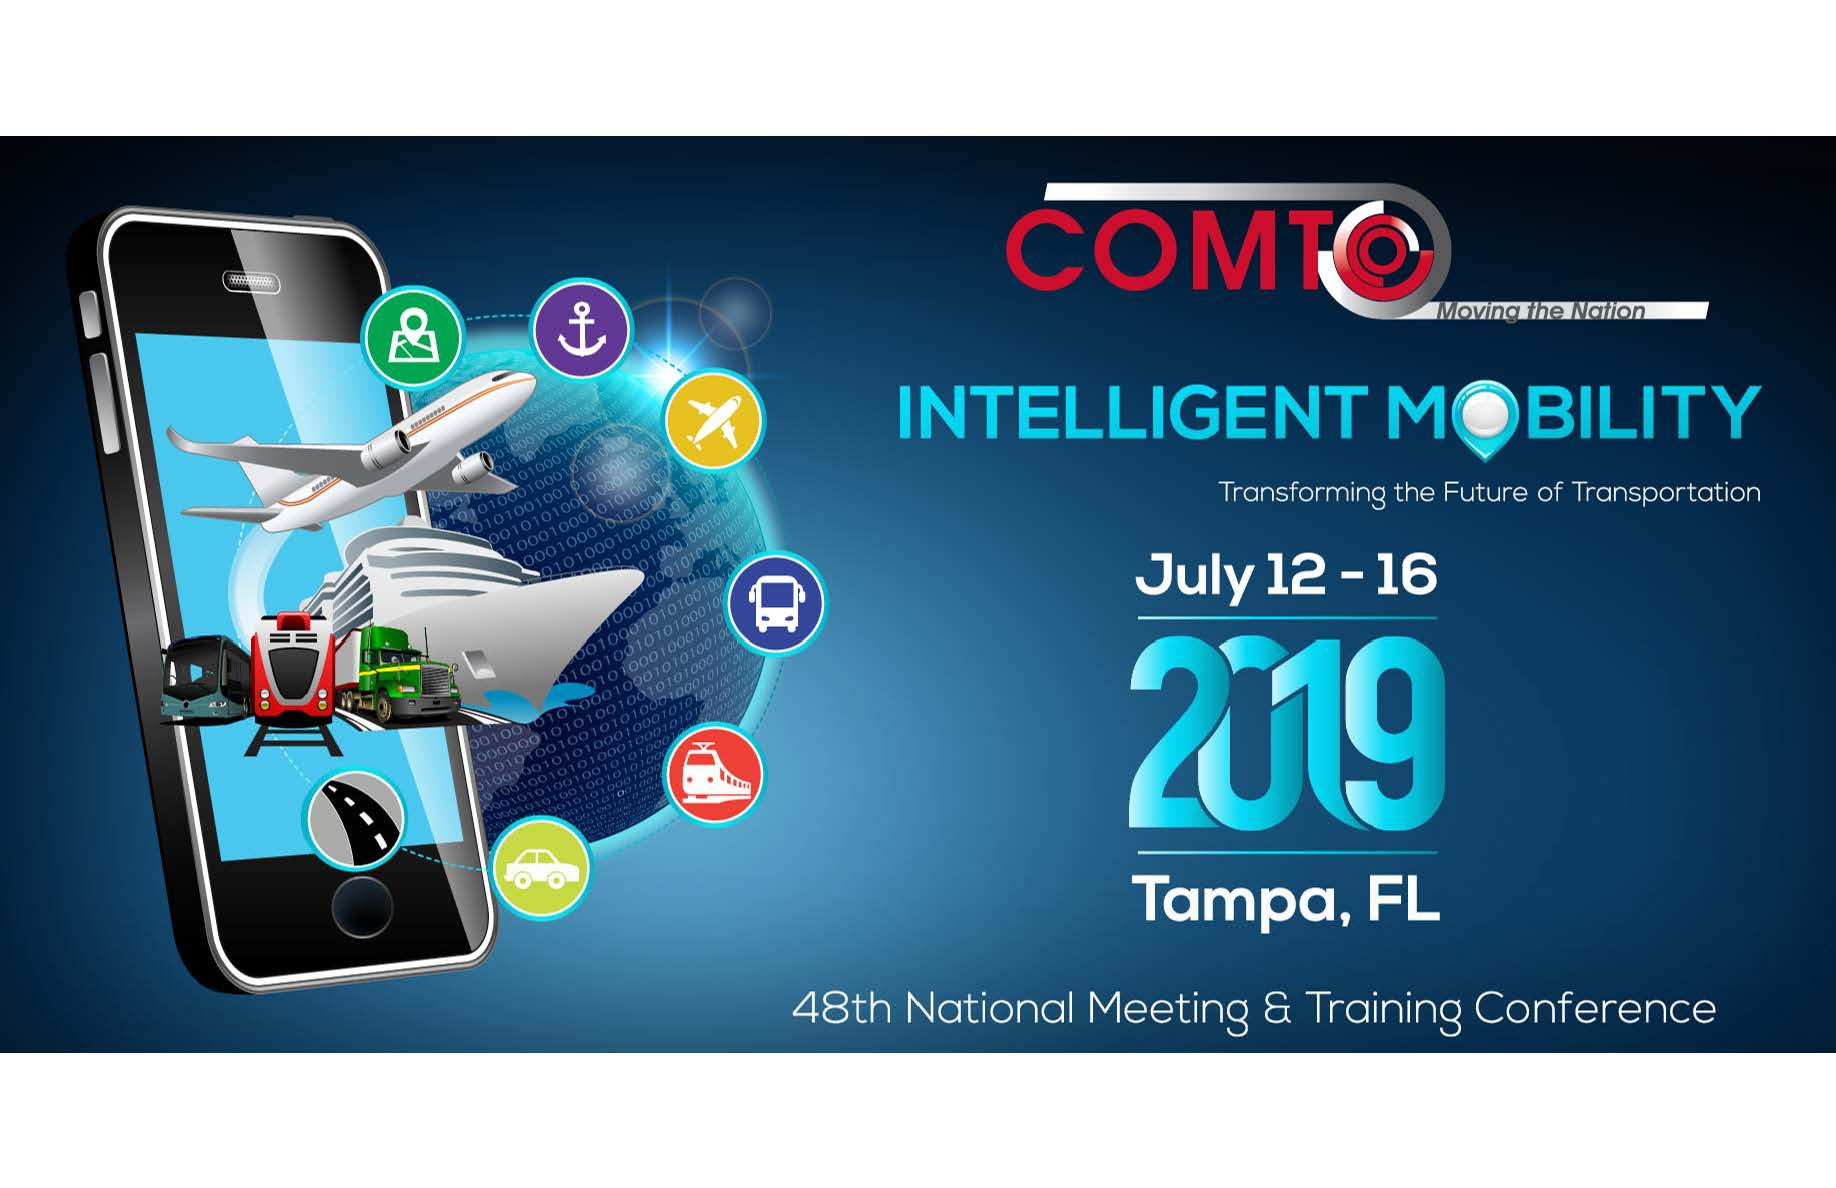 COMTO Comes To Tampa Bay